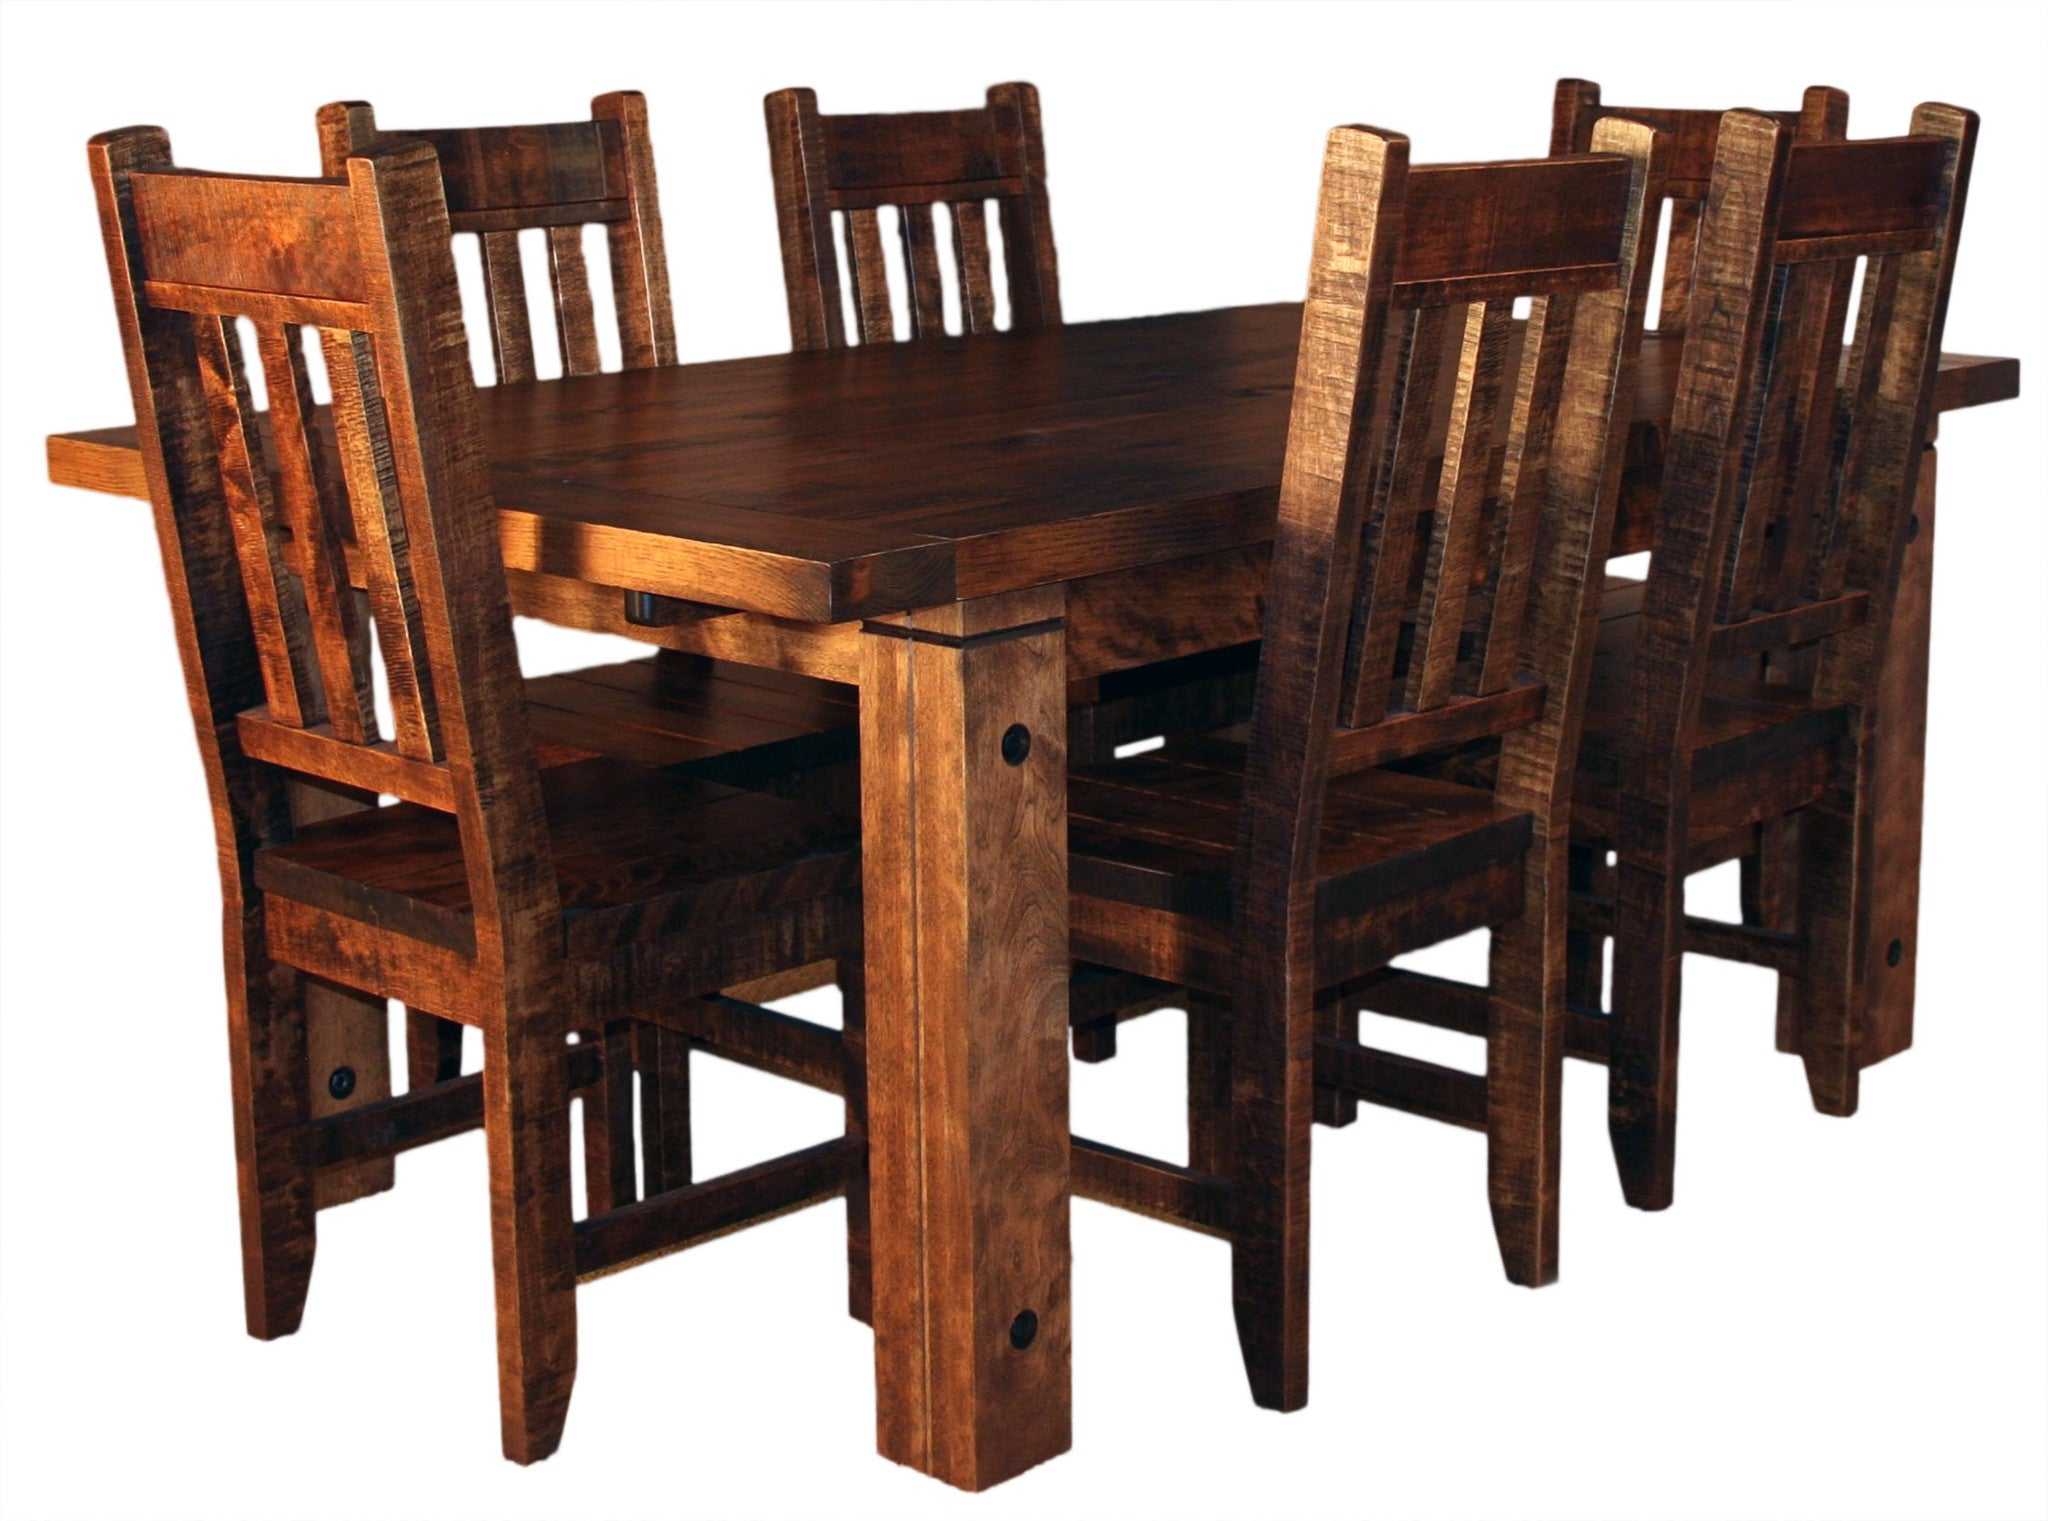 slat back chairs. Rustic 449P With Slat Back Chairs R